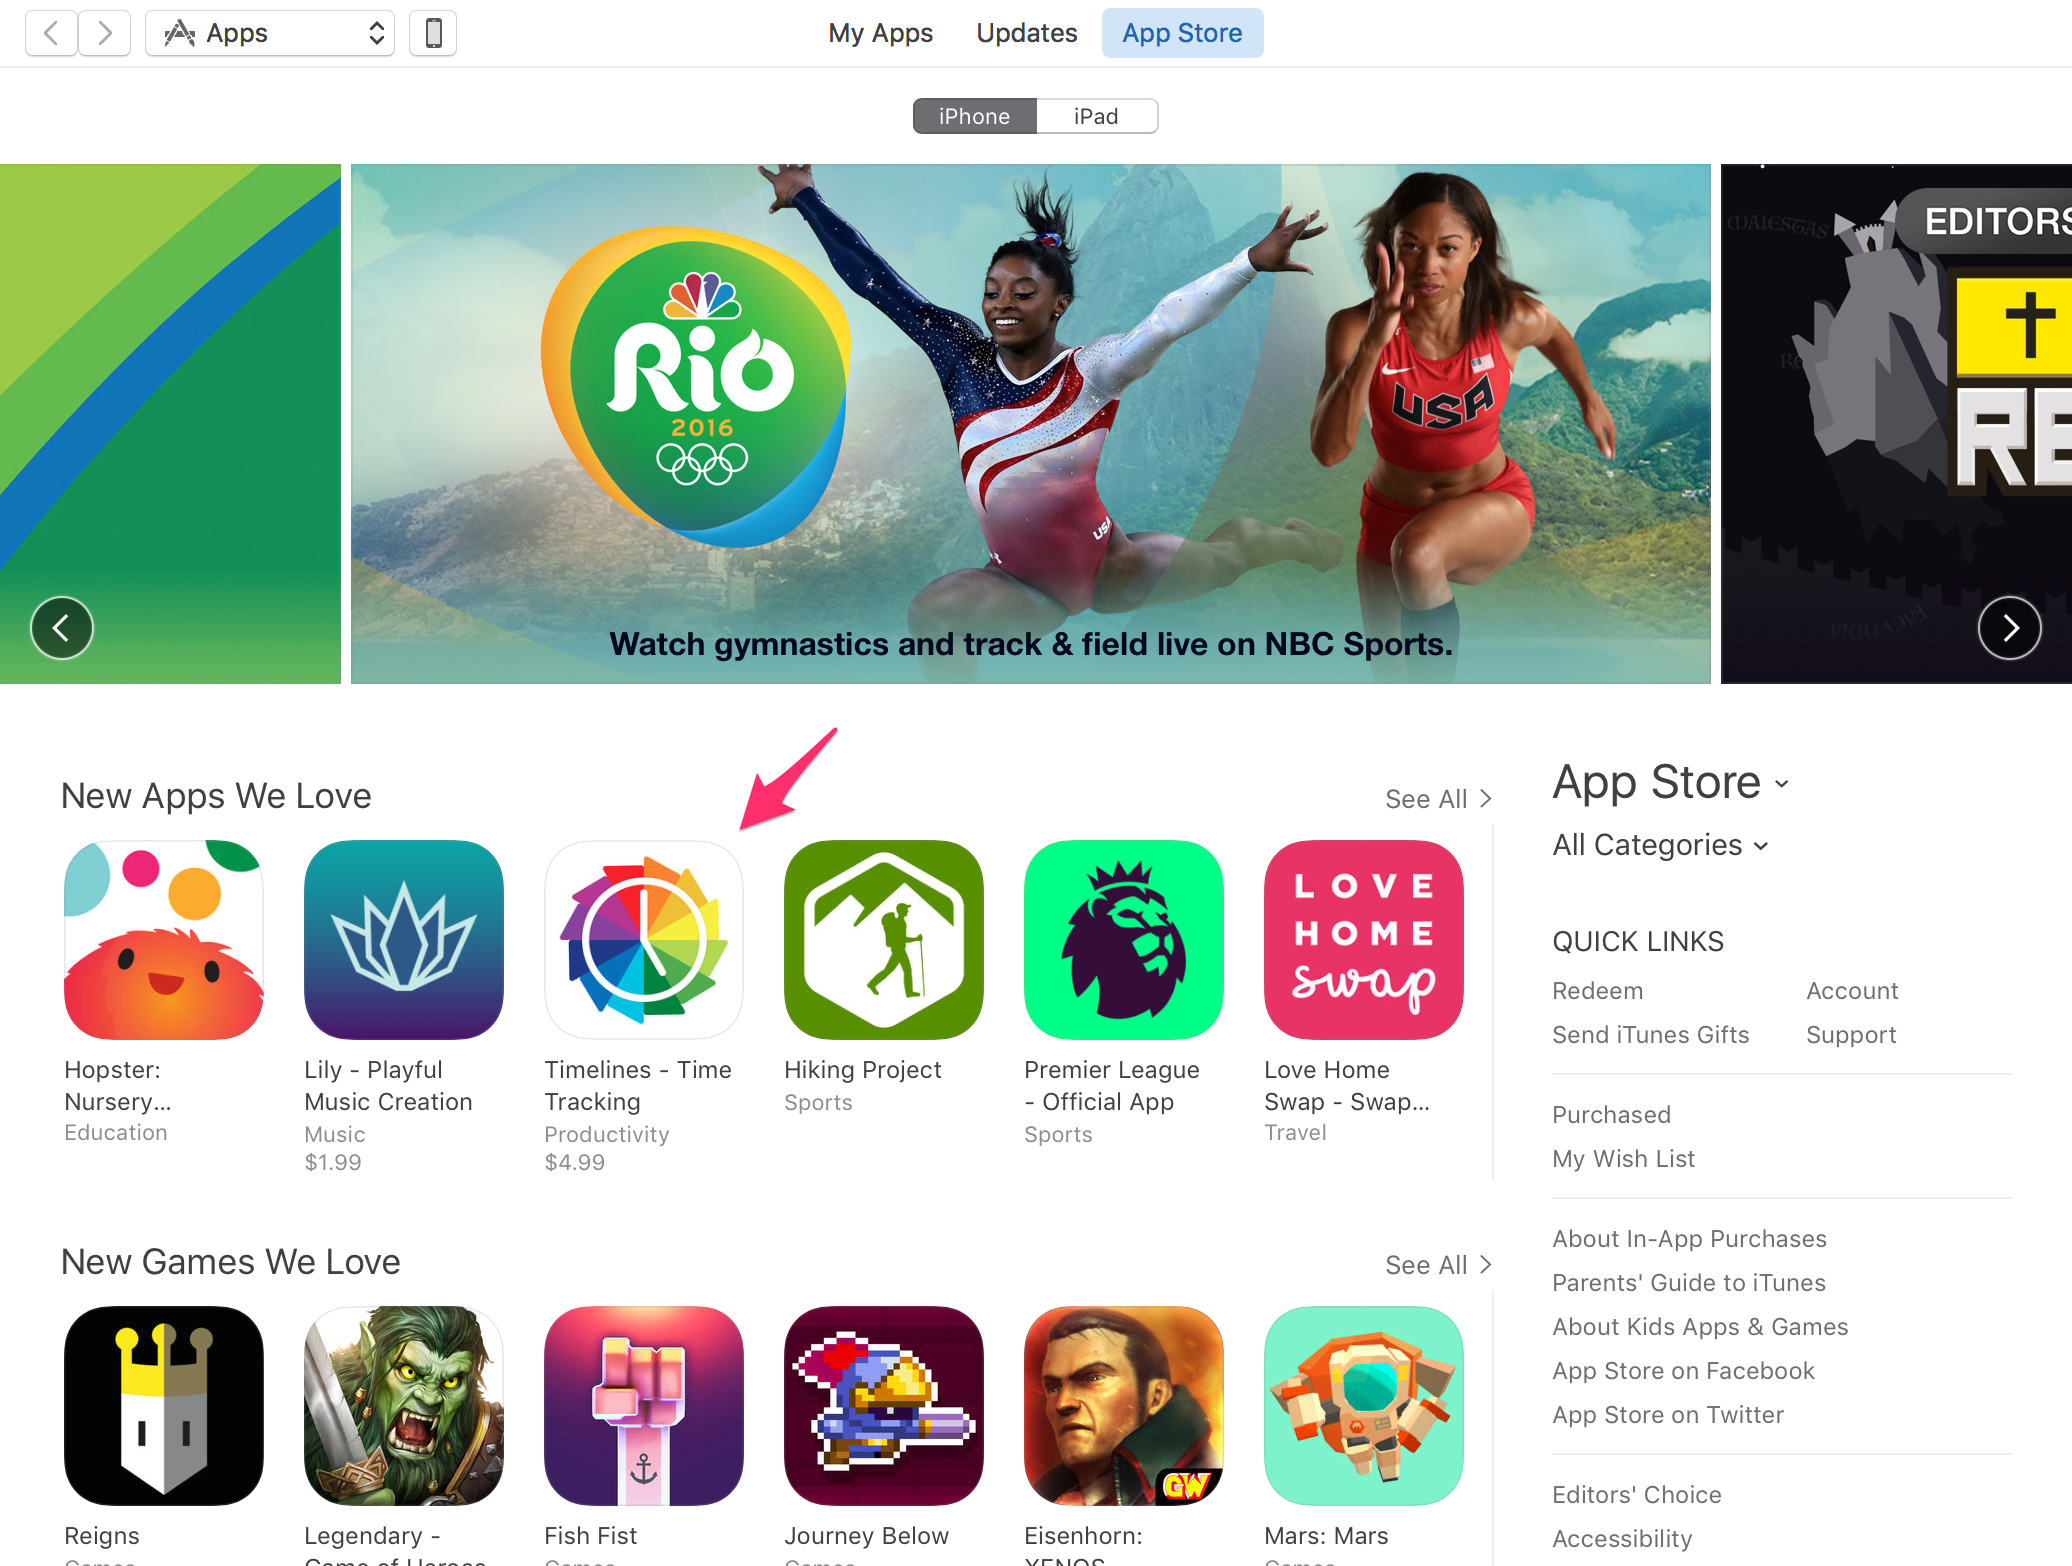 Timelines featured on the App Store